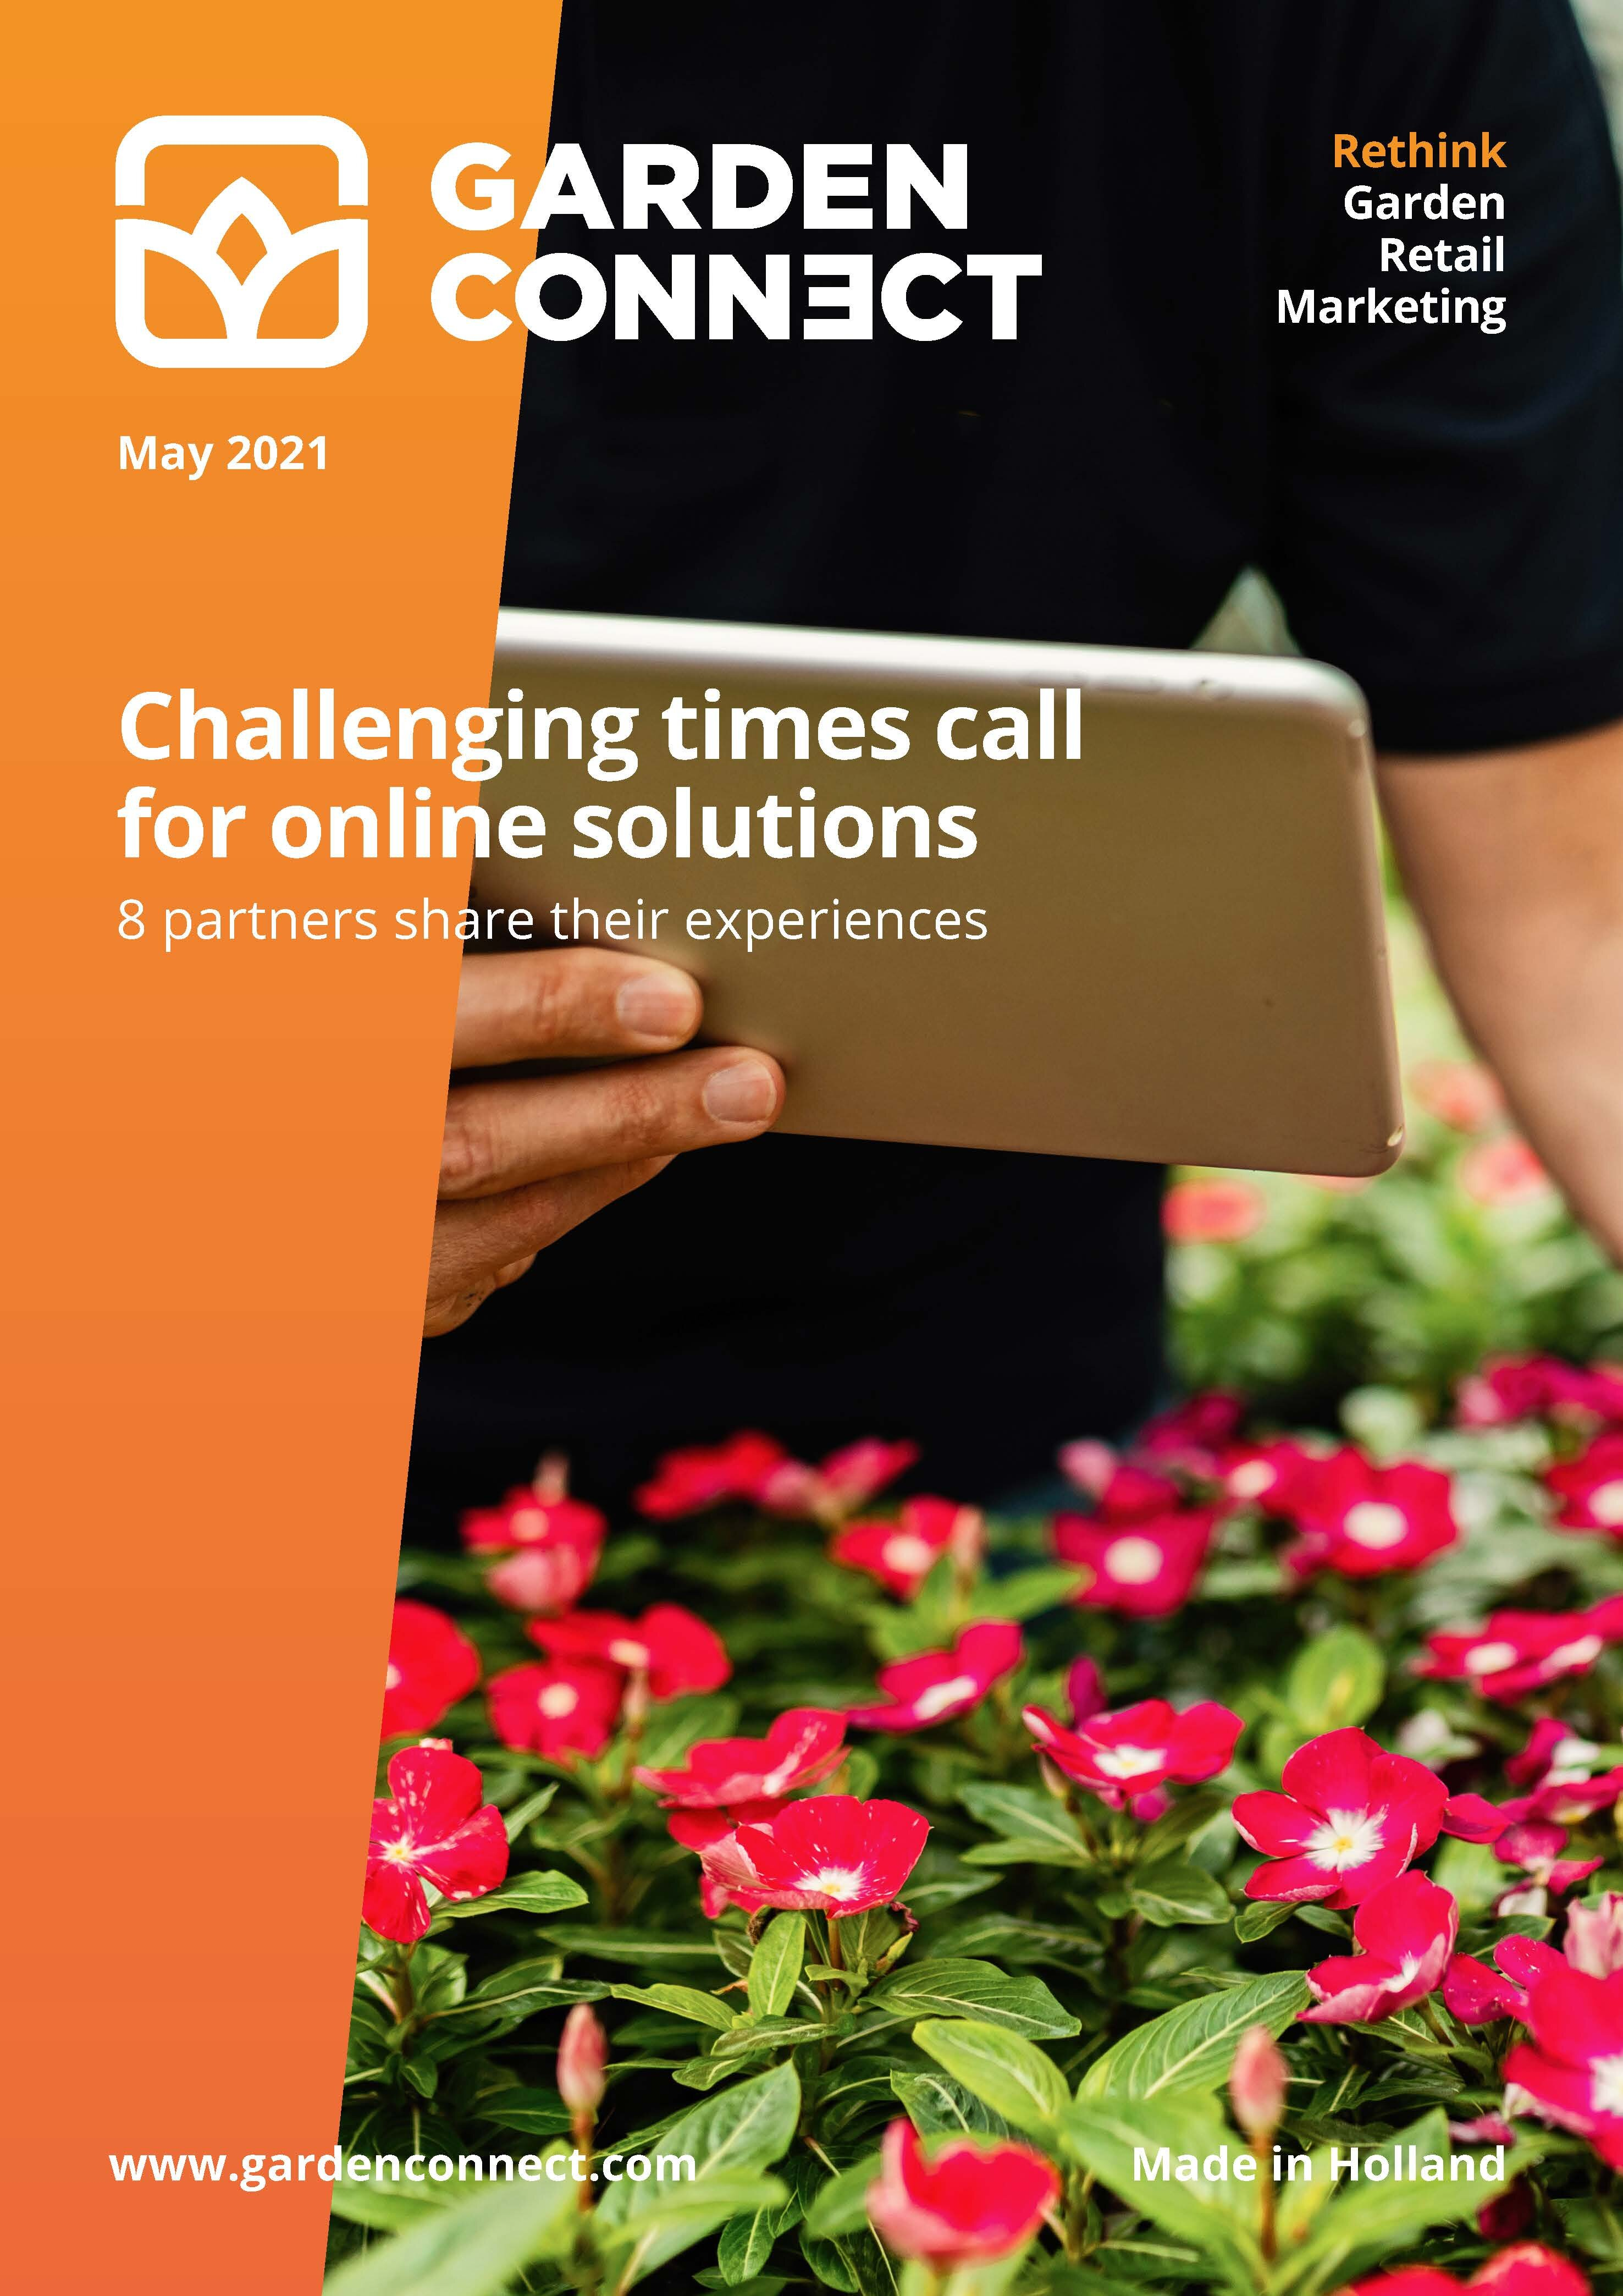 Challenging times call for online solutions